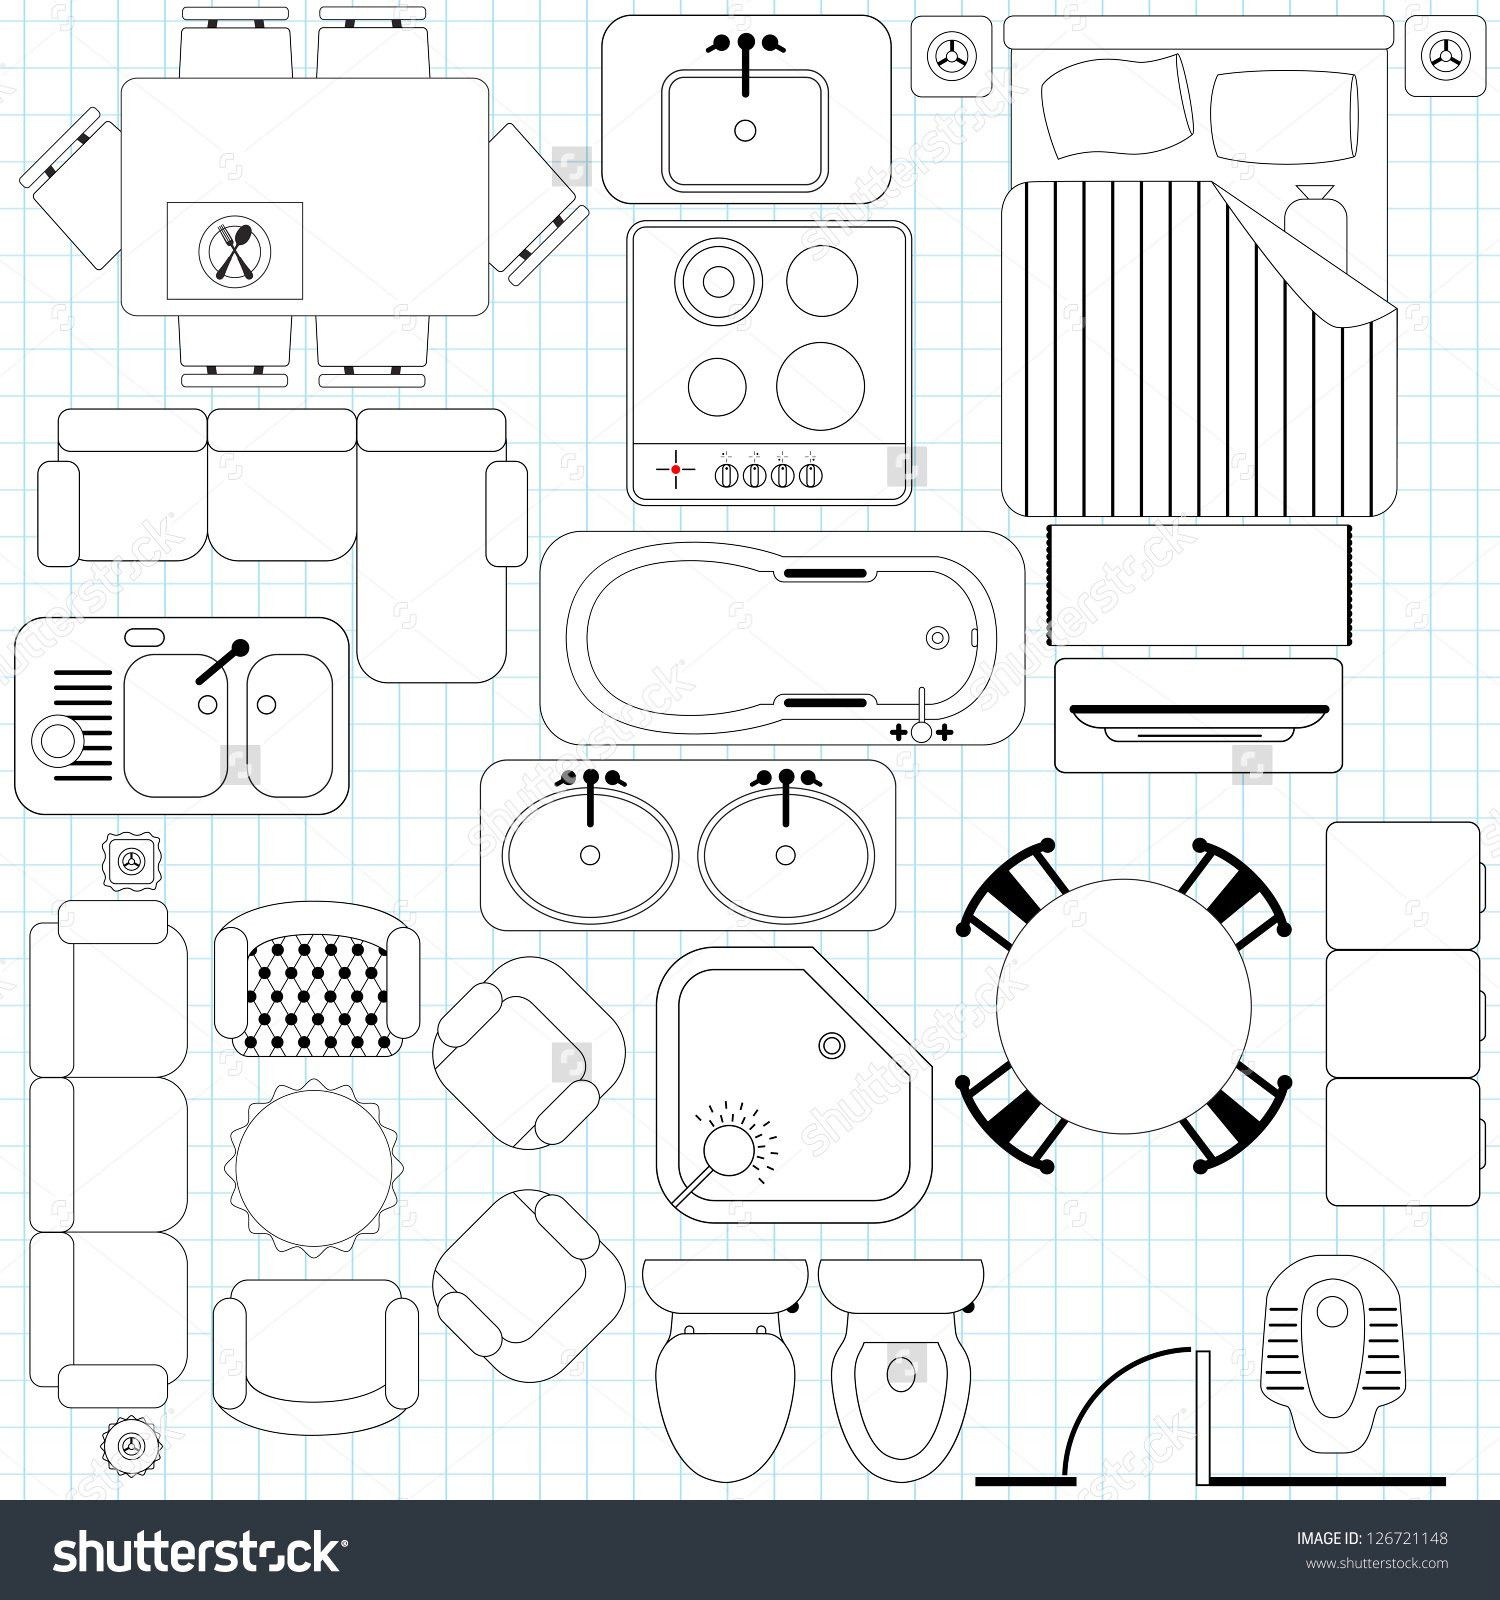 Image Result For Furniture Eps Vector Plan View